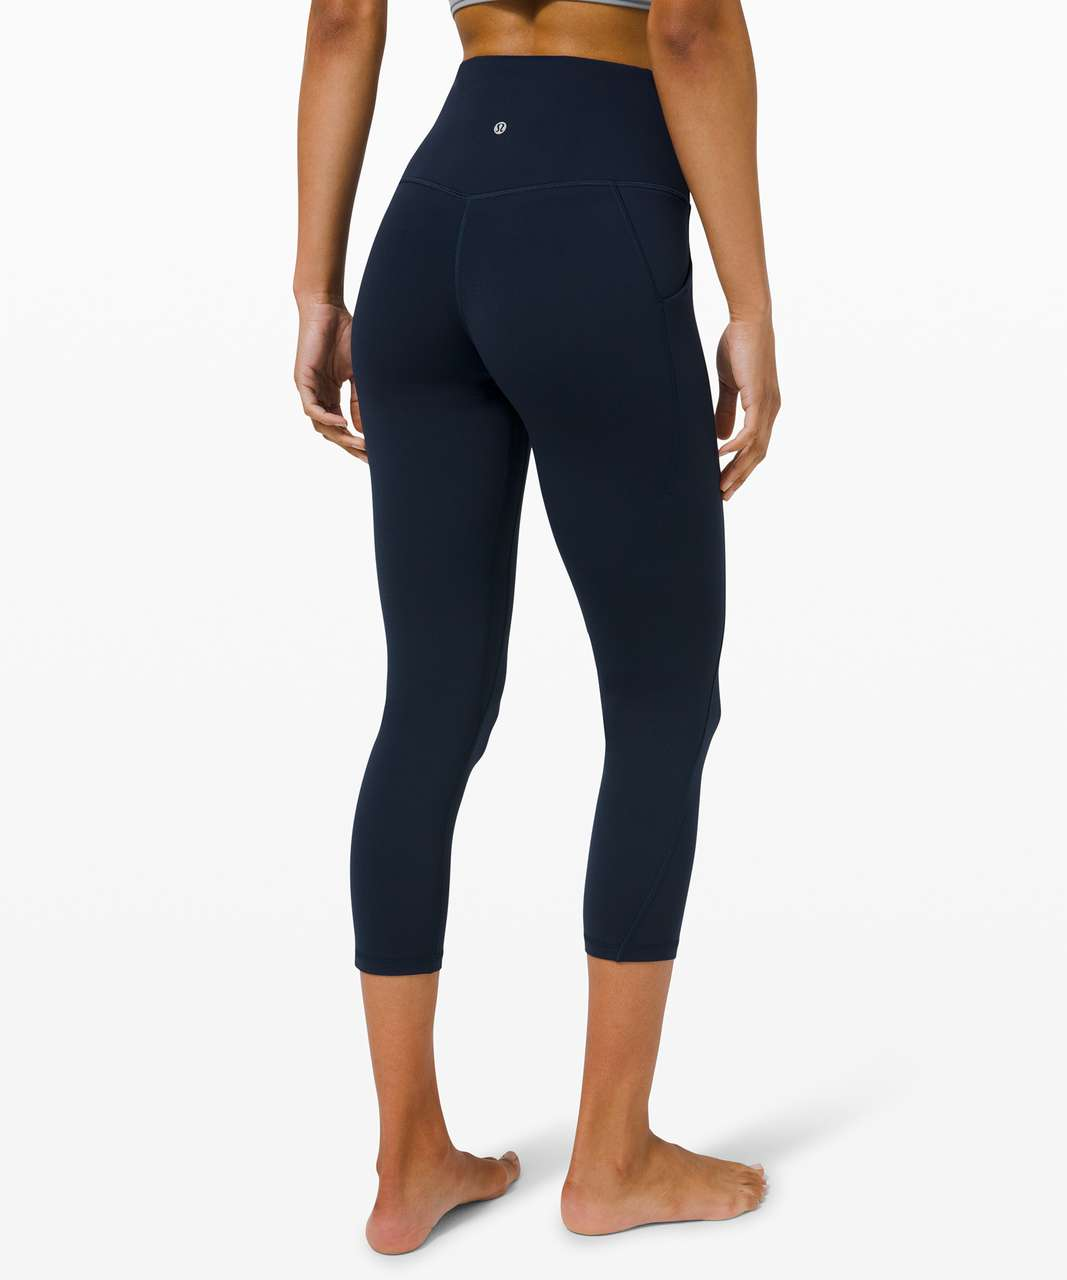 "Lululemon Align High Rise Crop with Pockets 23"" - True Navy"